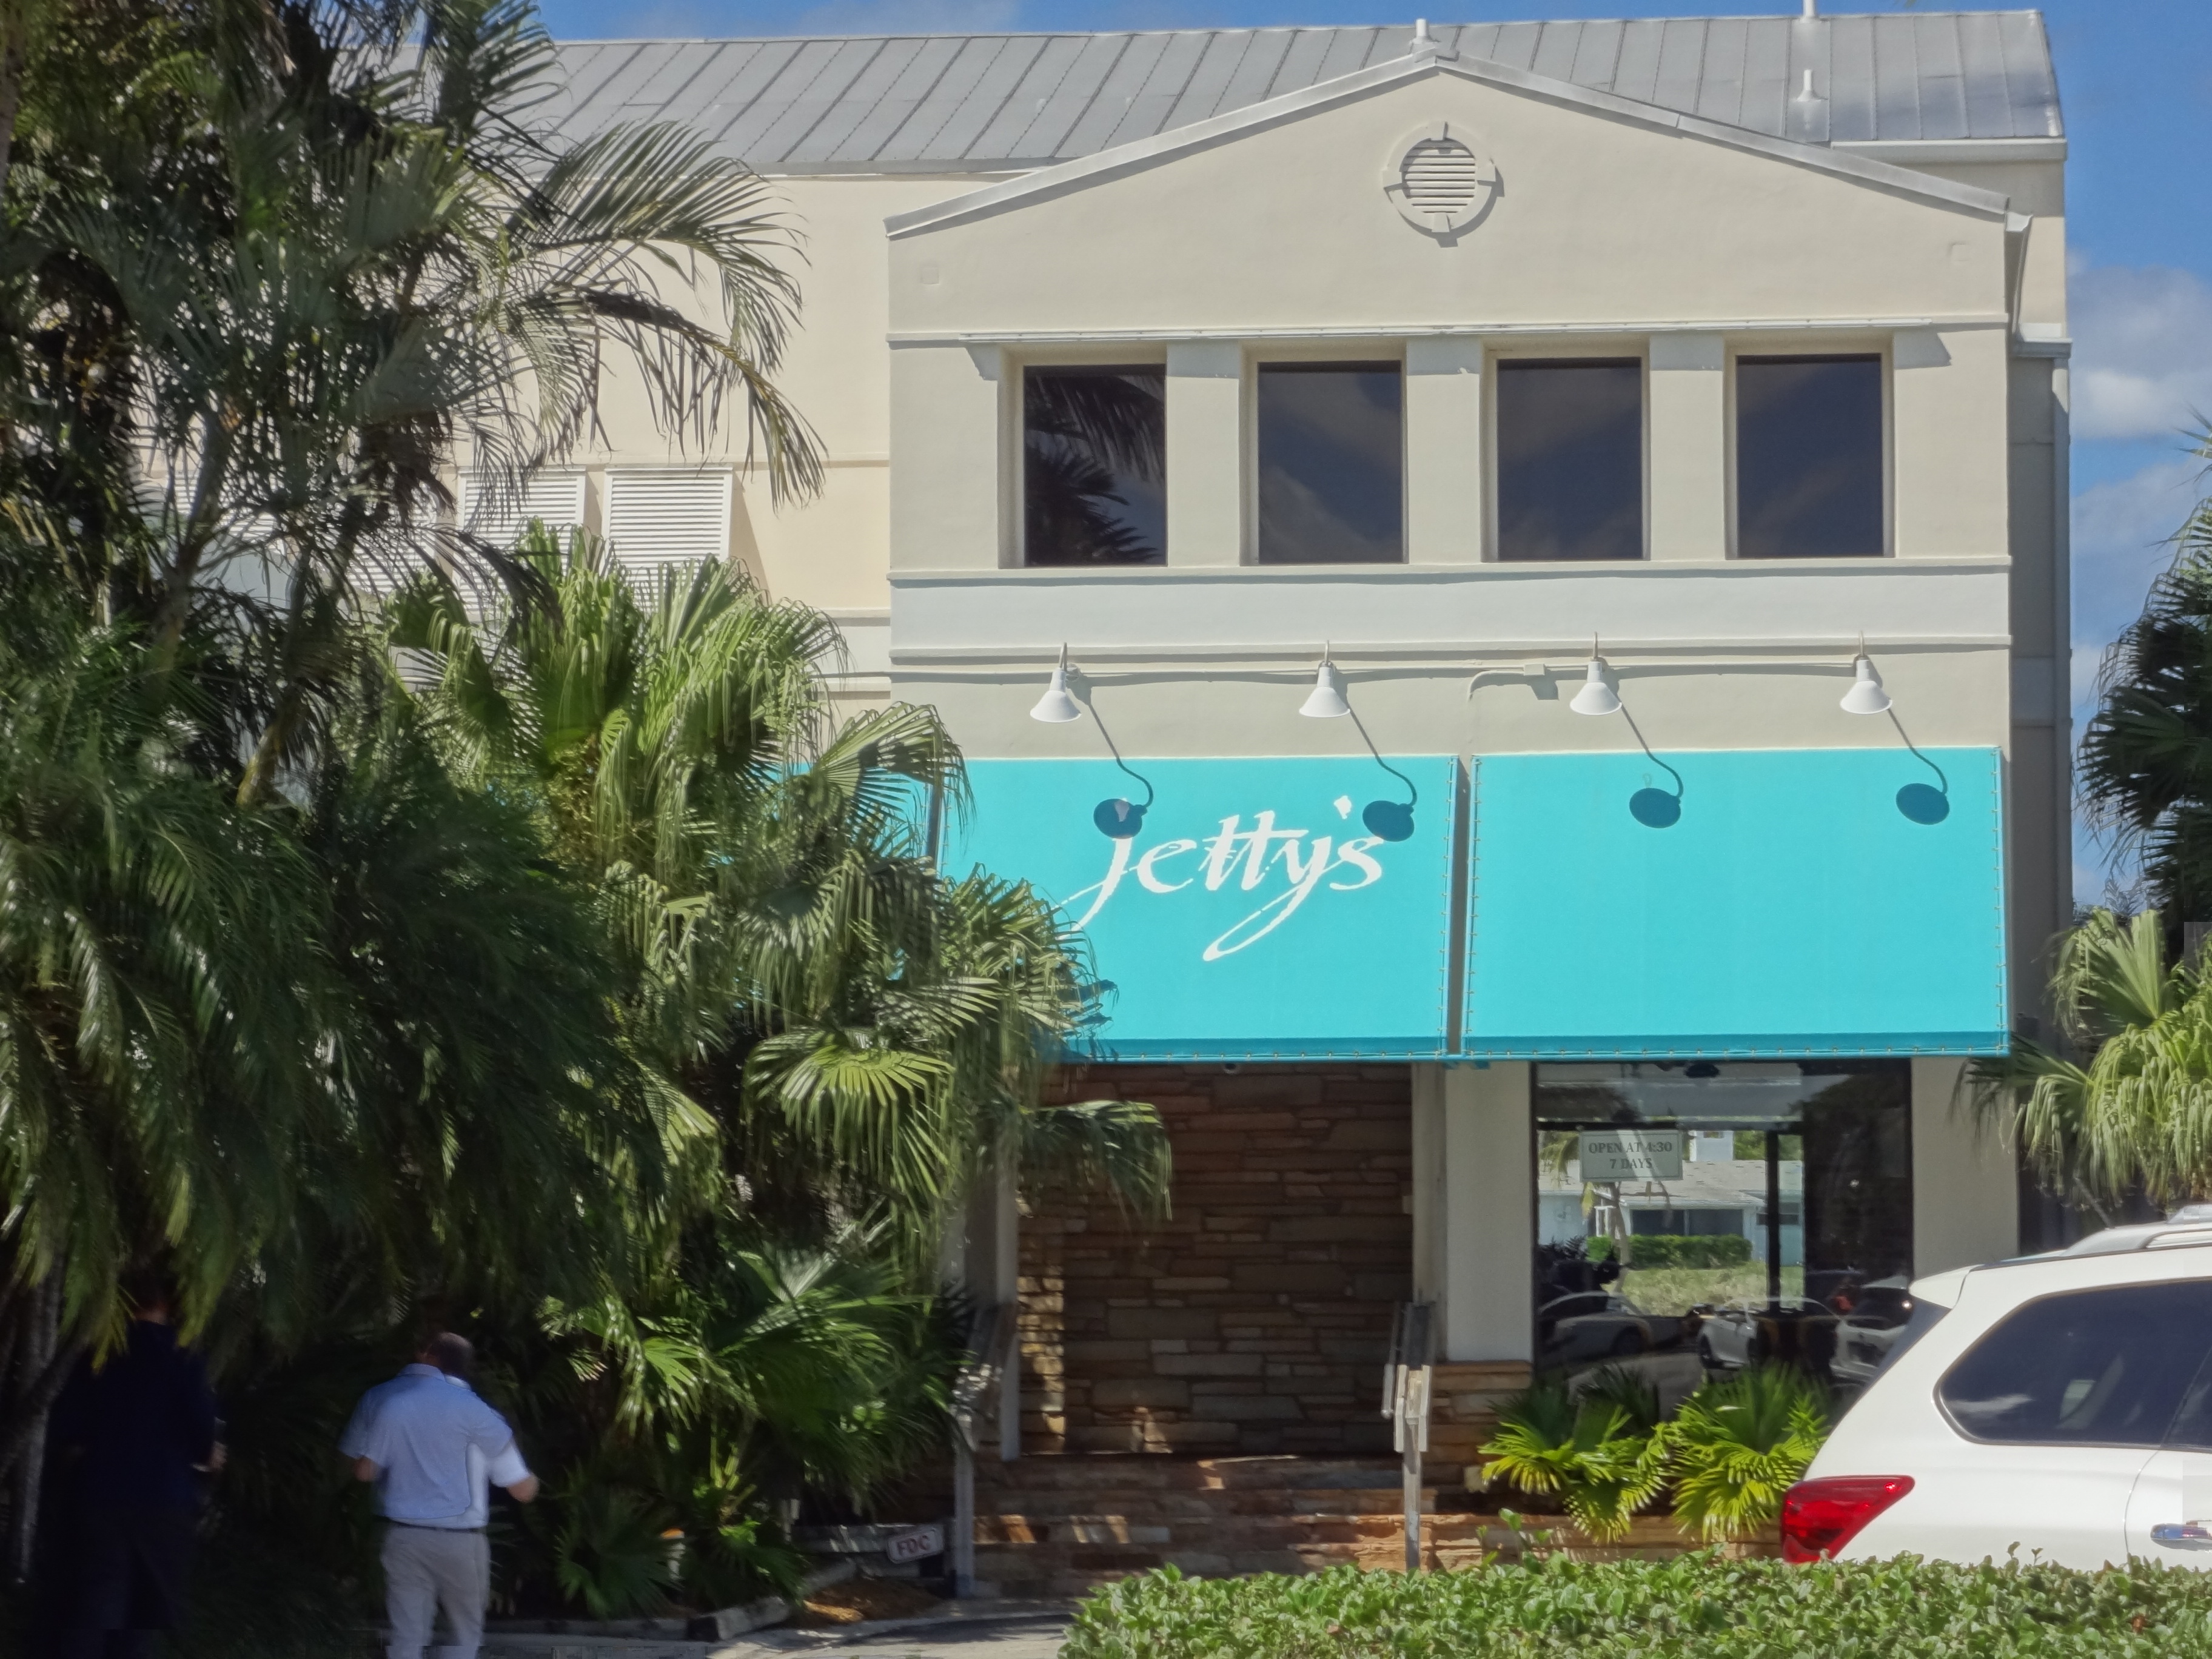 Jetty's waterfront dining Jupiter FL